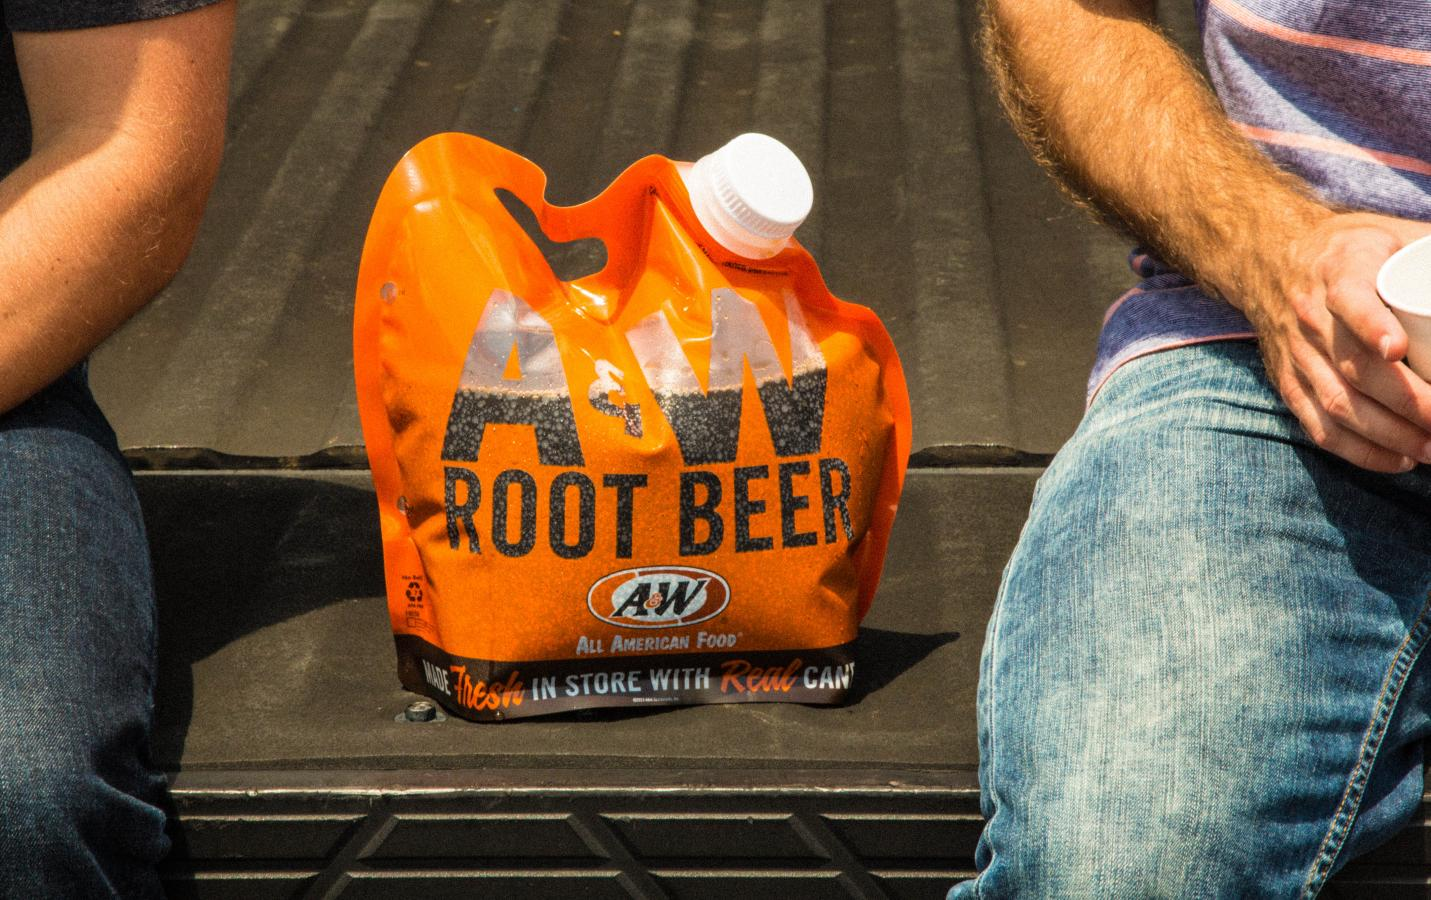 Gallon of Root Beer to go